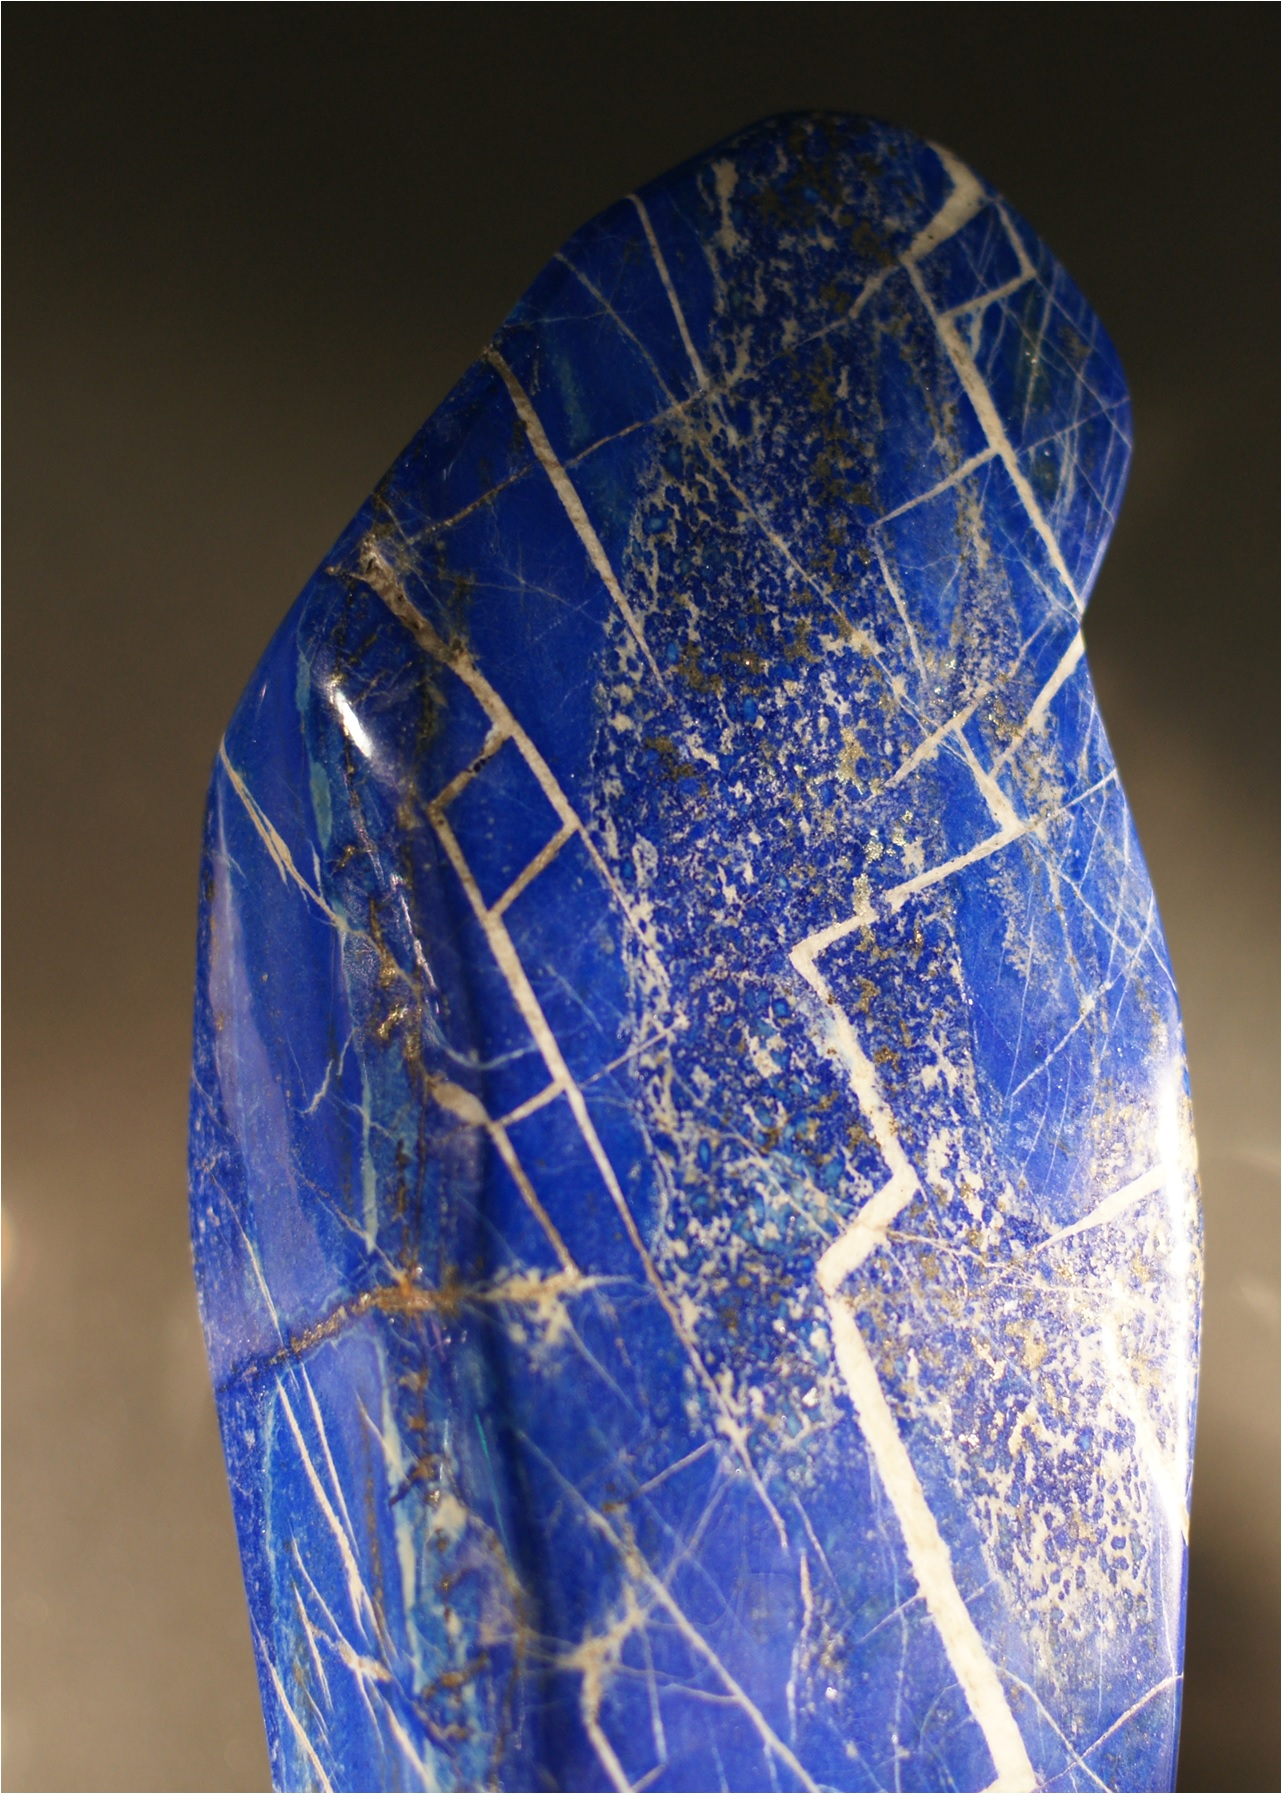 Metaphysically, lapis lazuli is also used for protection to guard against psychic attacks.  It can help open the Third Eye and is a useful companion for meditation and spiritual journeys. -- Lapis Lazuli Metaphysical USes